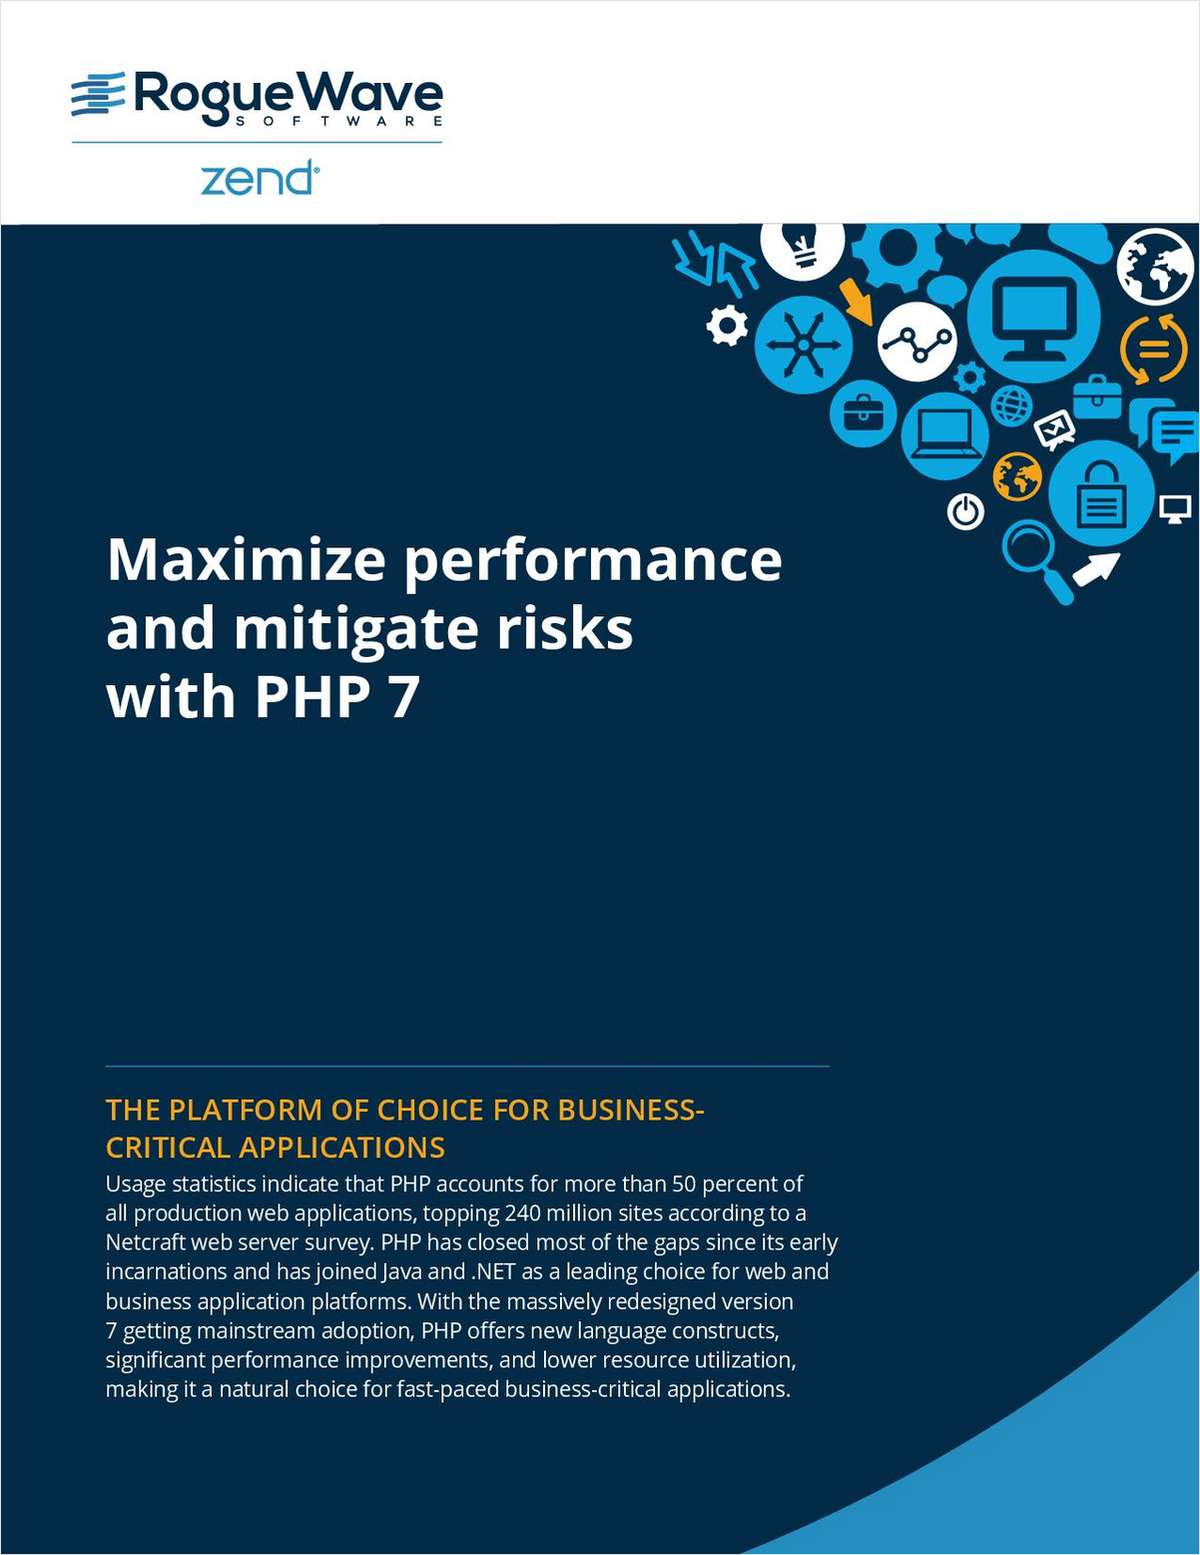 Maximize Performance and Mitigate Risks with PHP 7